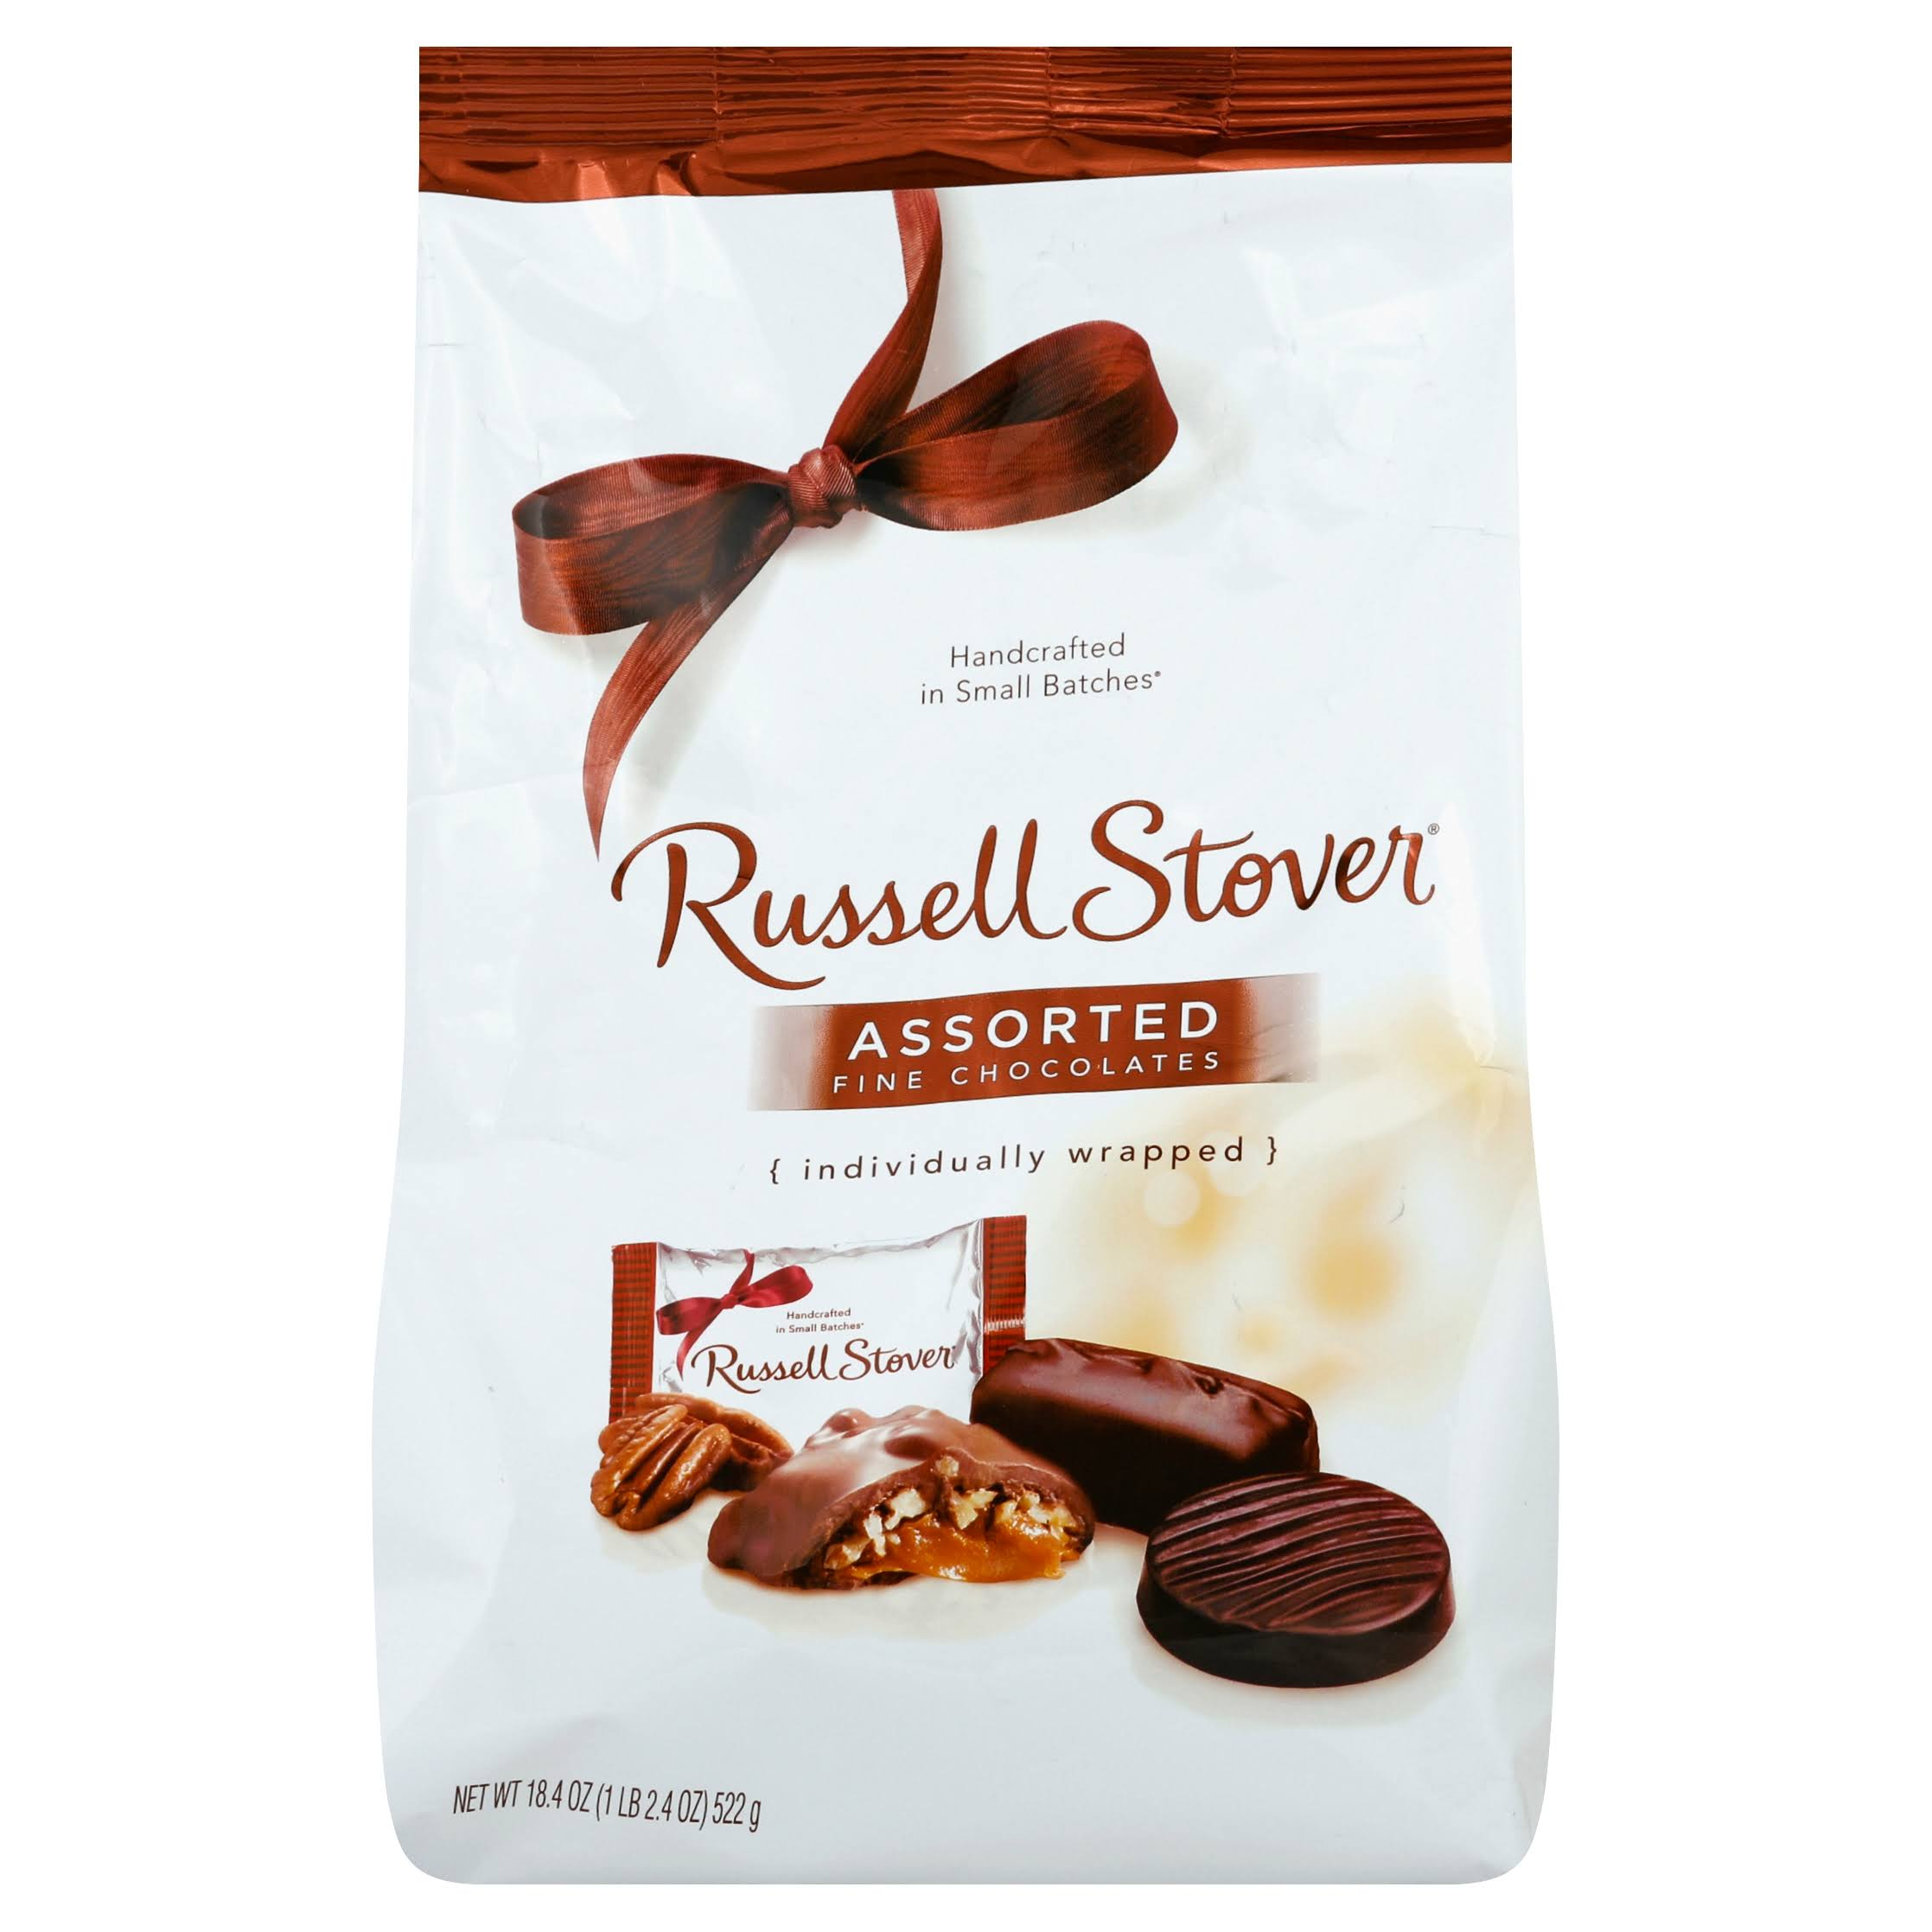 Russell Stover Assorted Chocolates Gusset Bag - 18.4oz